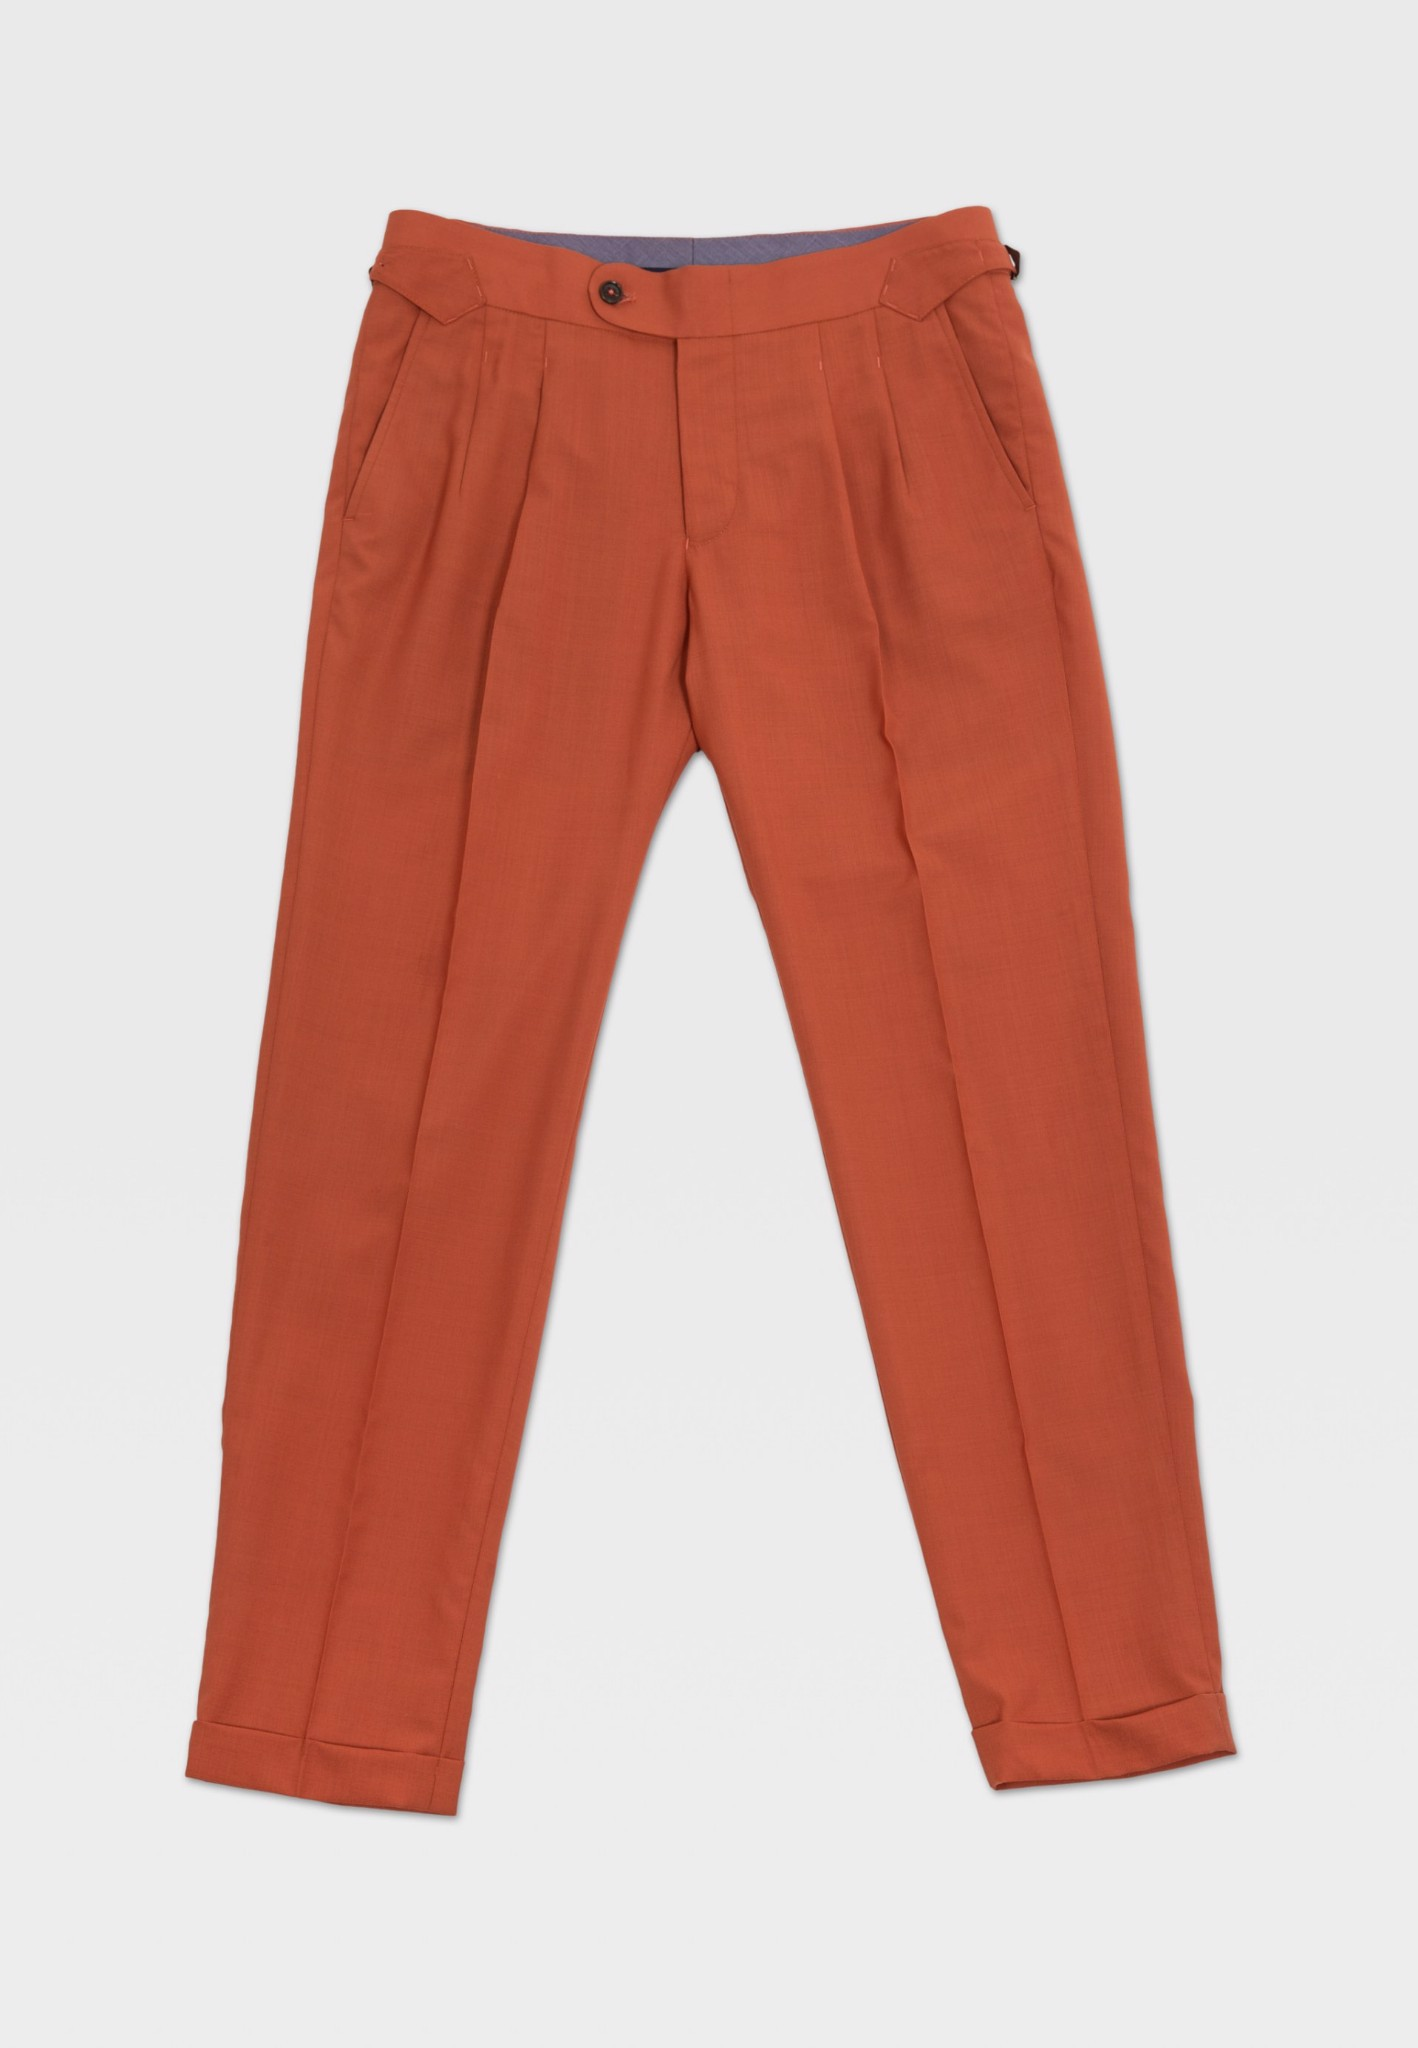 Apple trousers with buckles